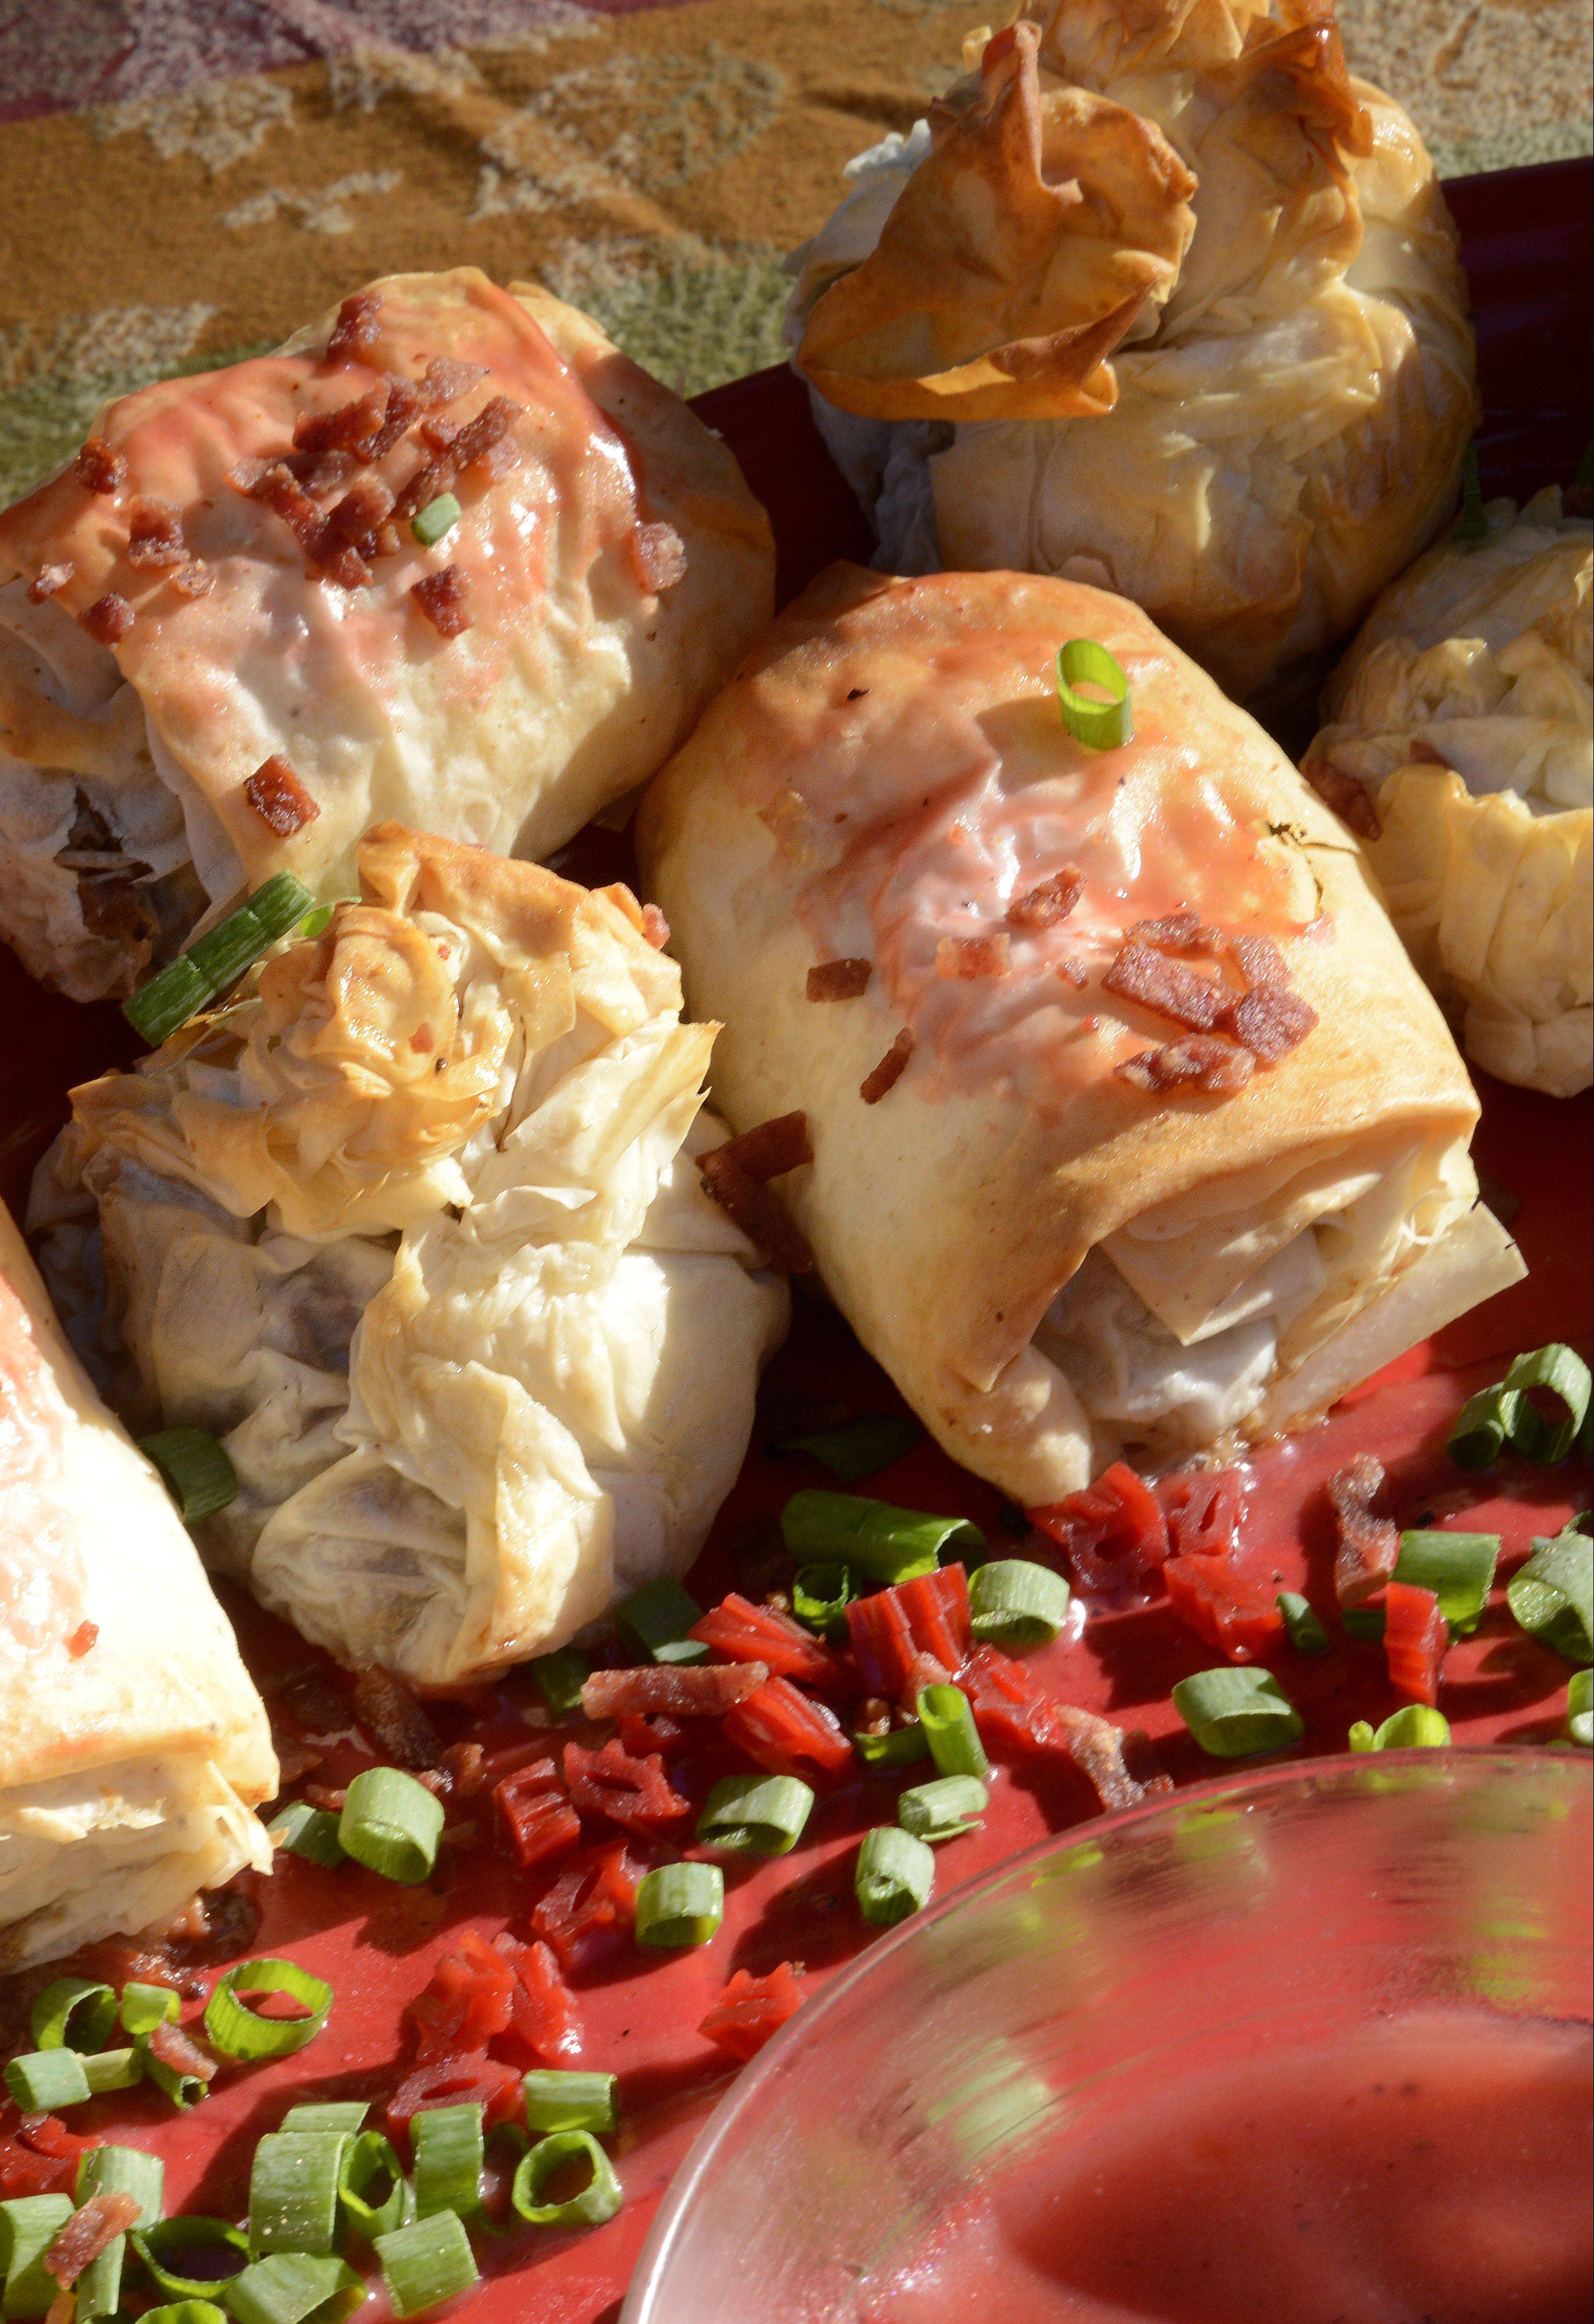 Dan Rich's appetizer spread included Phyllo Bombs and beef Wellingtons both served with a Twizzler port sauce.